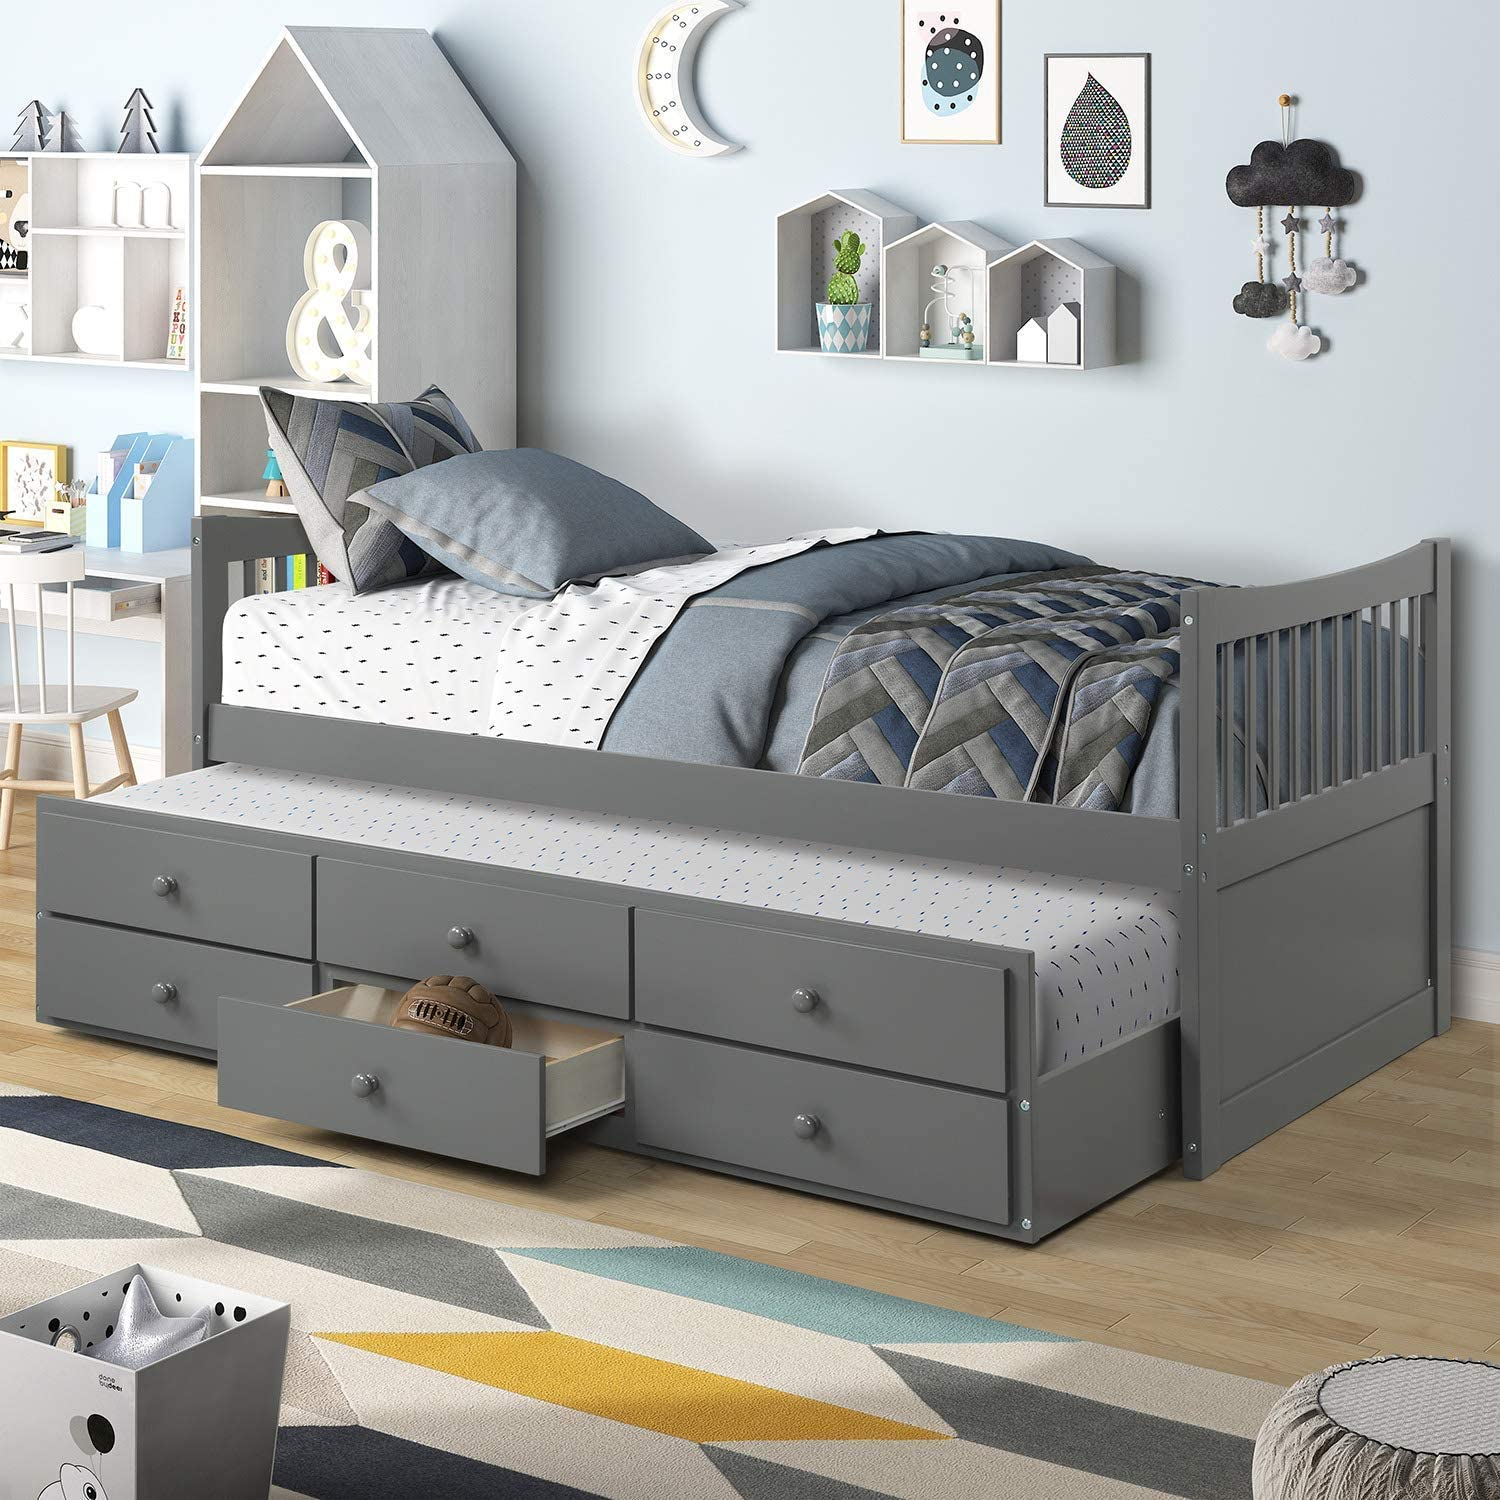 MIERES Twin Captain Bed with Trundle and Drawers, 3-in-one Solid Wood Daybed with Storage for Kids Guests, Grey-AAE